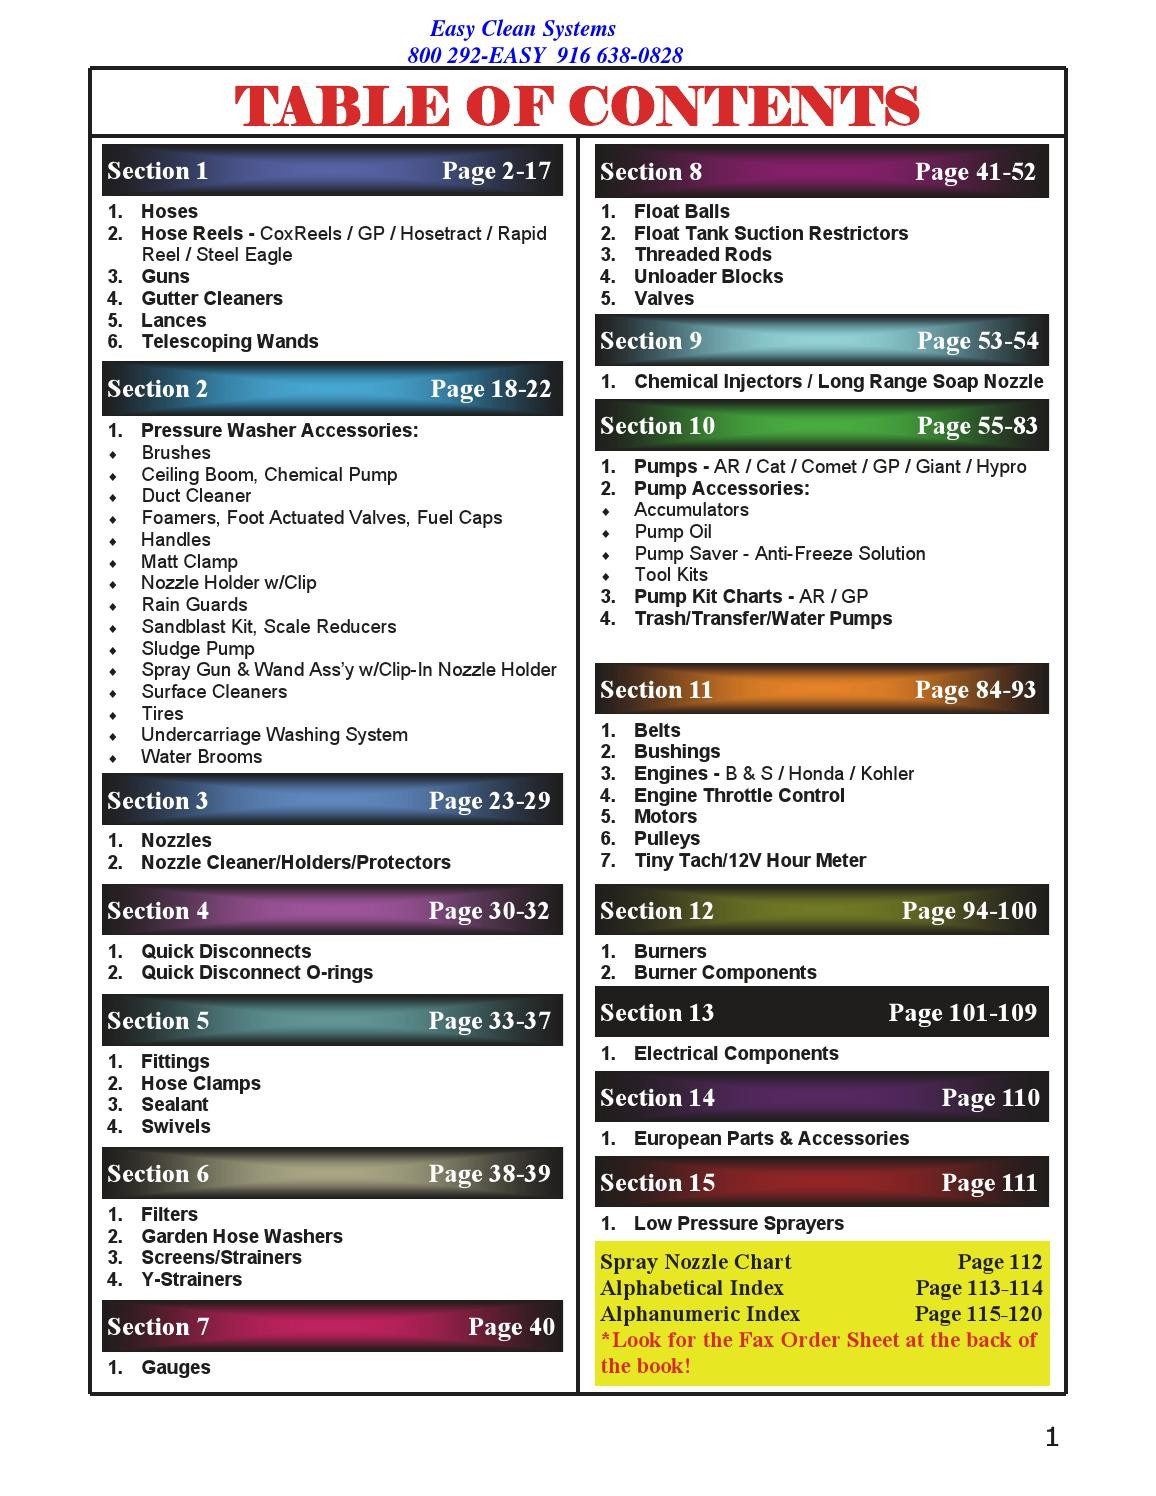 Easy Clean Systems Parts & Accessories Catalog acs by Mark issuu